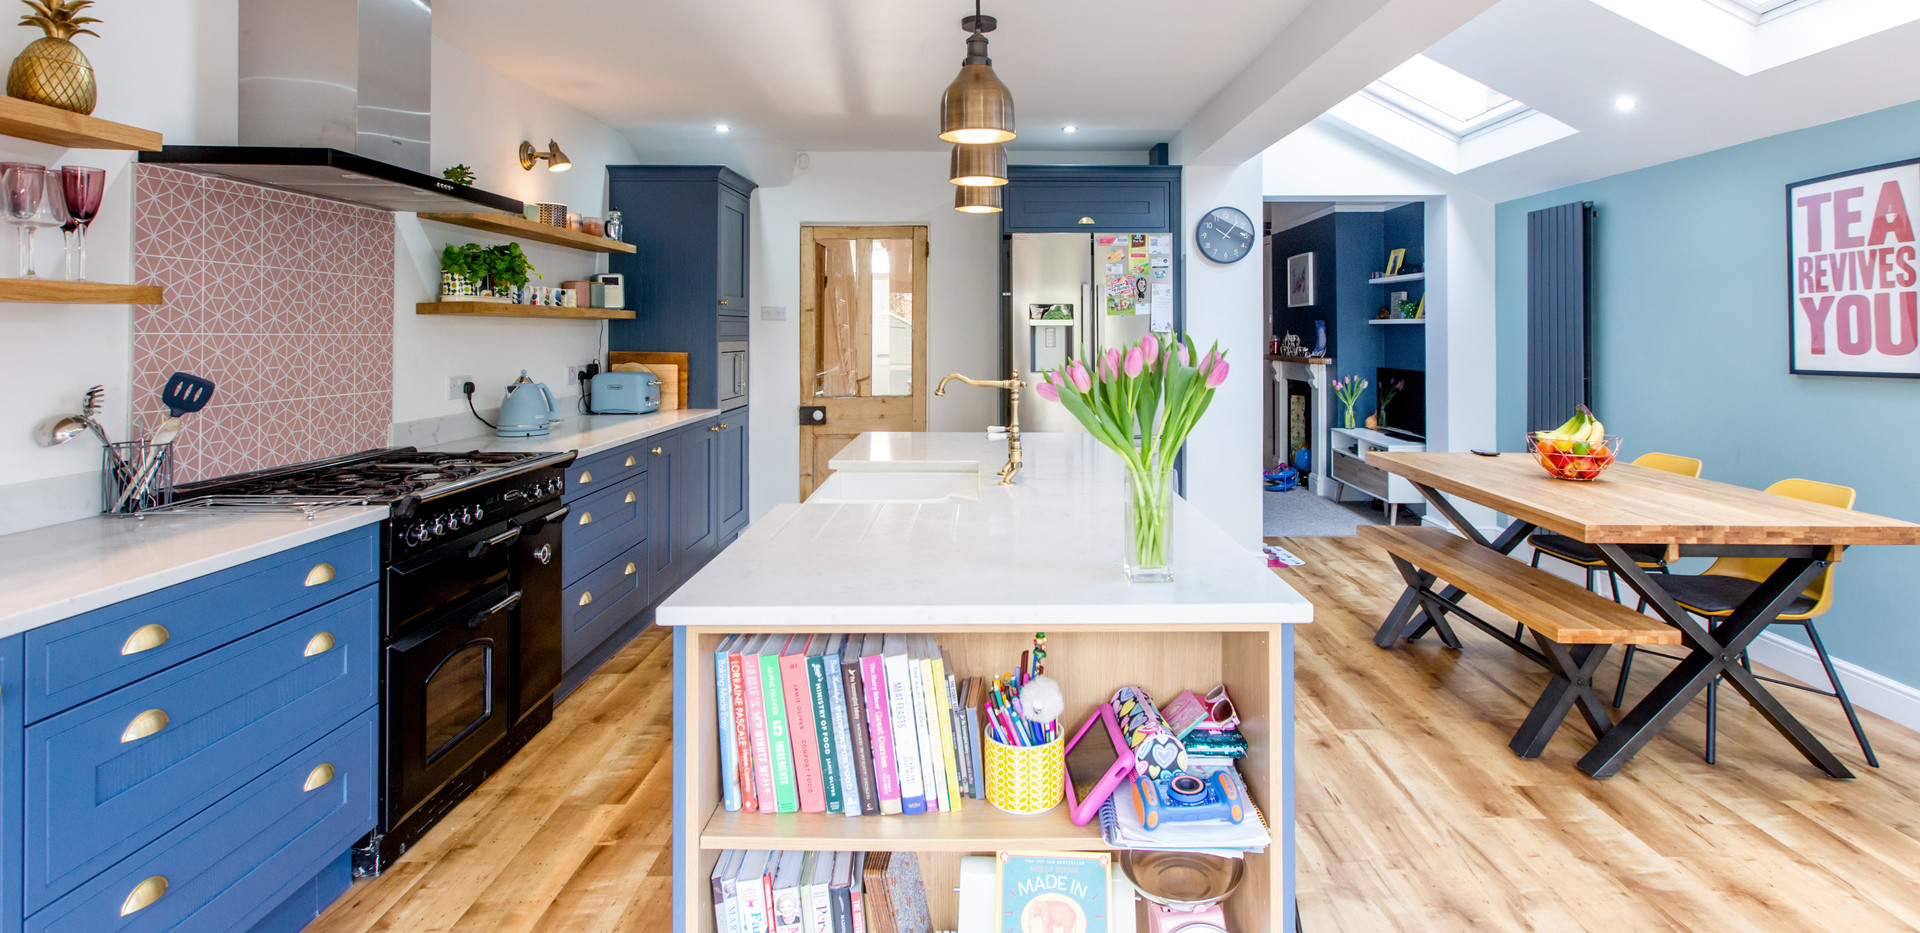 Rooflights flood the space with natural light